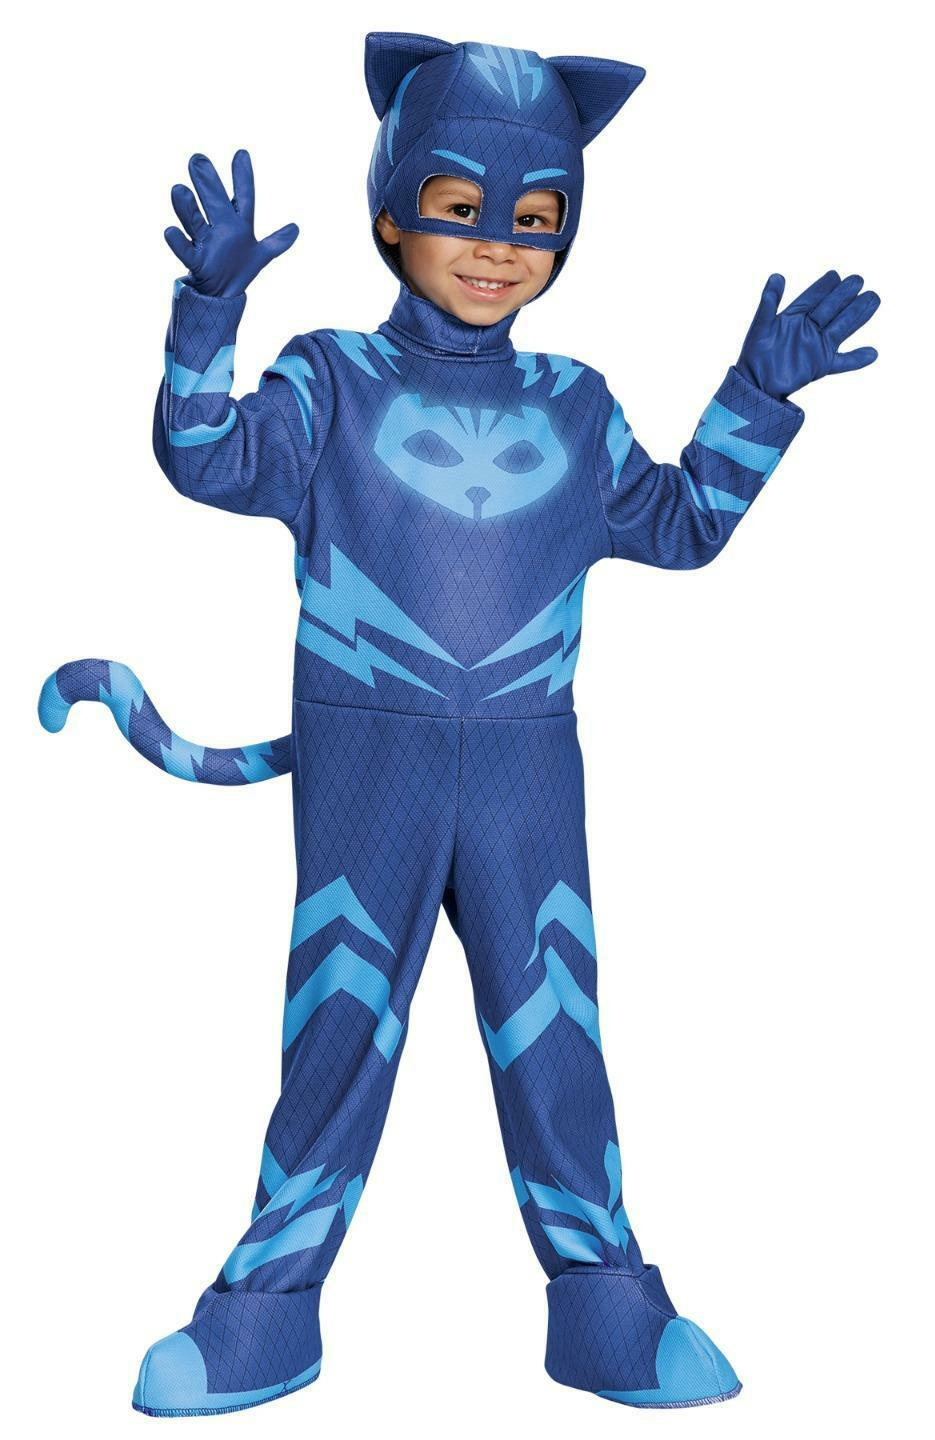 DISNEY PJ MASKS CATBOY DELUXE 4 PC GLOWS IN THE DARK COSTUME NEW DG17159